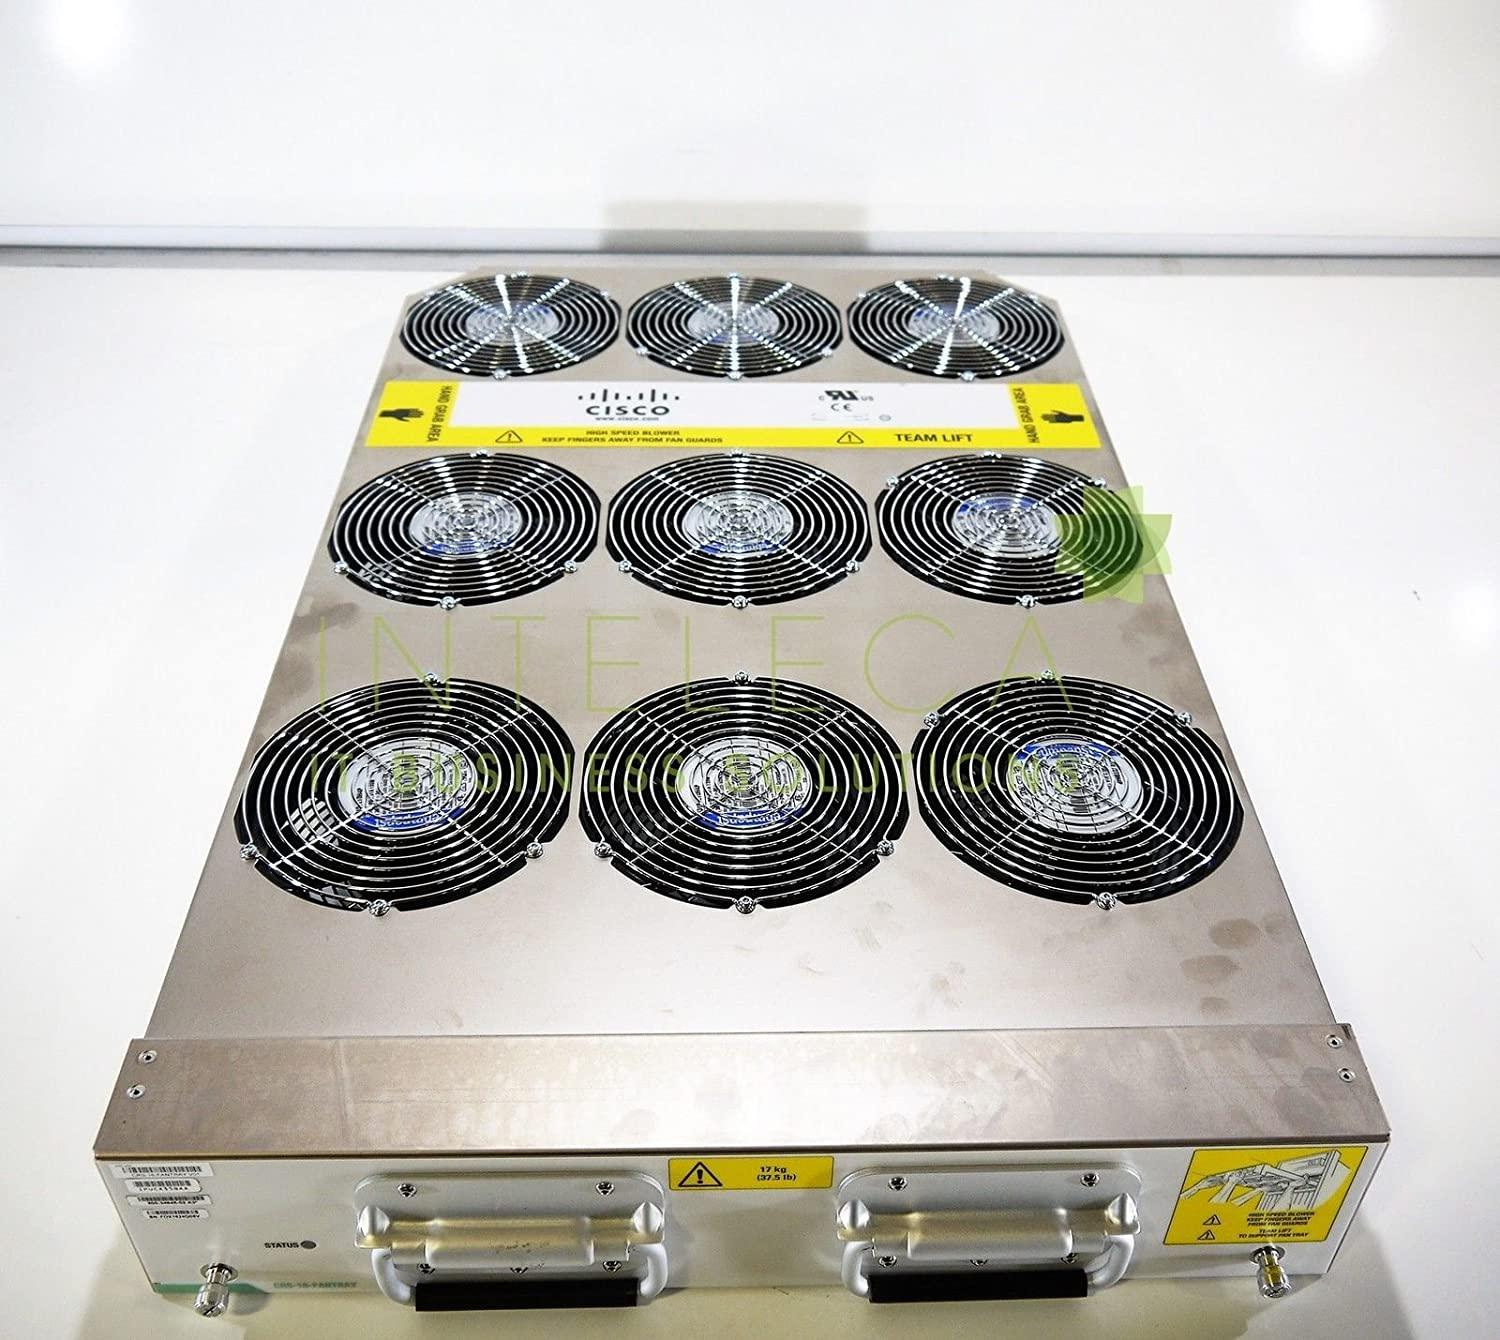 Amazon com: CISCO Crs 16 Slot Fan Tray For Crs-16/s-b CRS-16-FANTRAY